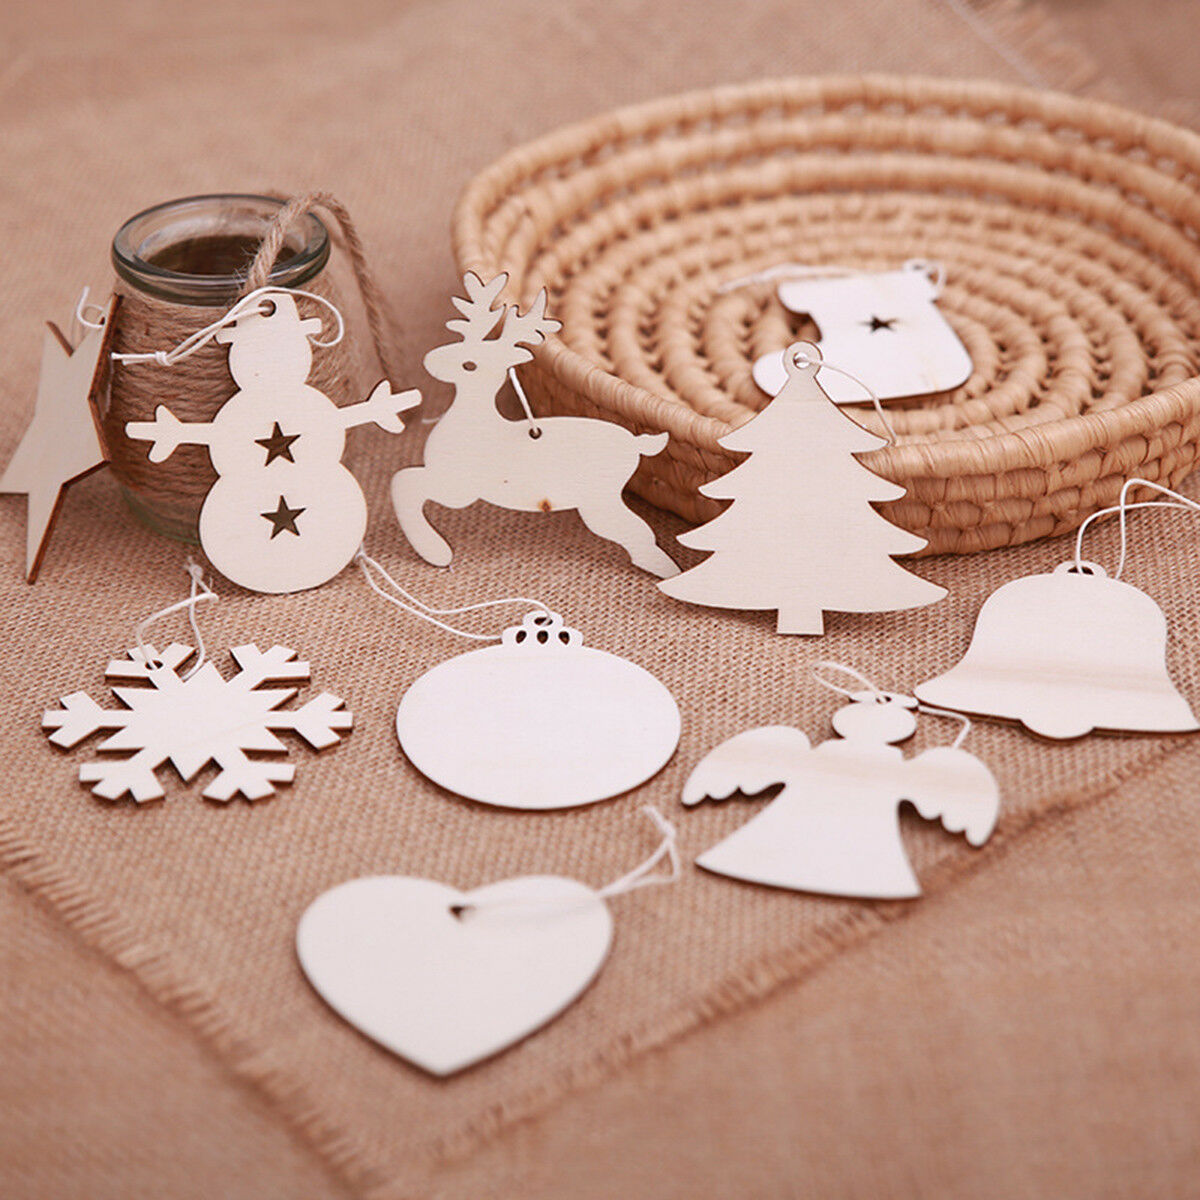 10 x CHRISTMAS STAR small WOODEN SHAPE EMBELLISHMENT HANGING CRAFT PLAIN TAG